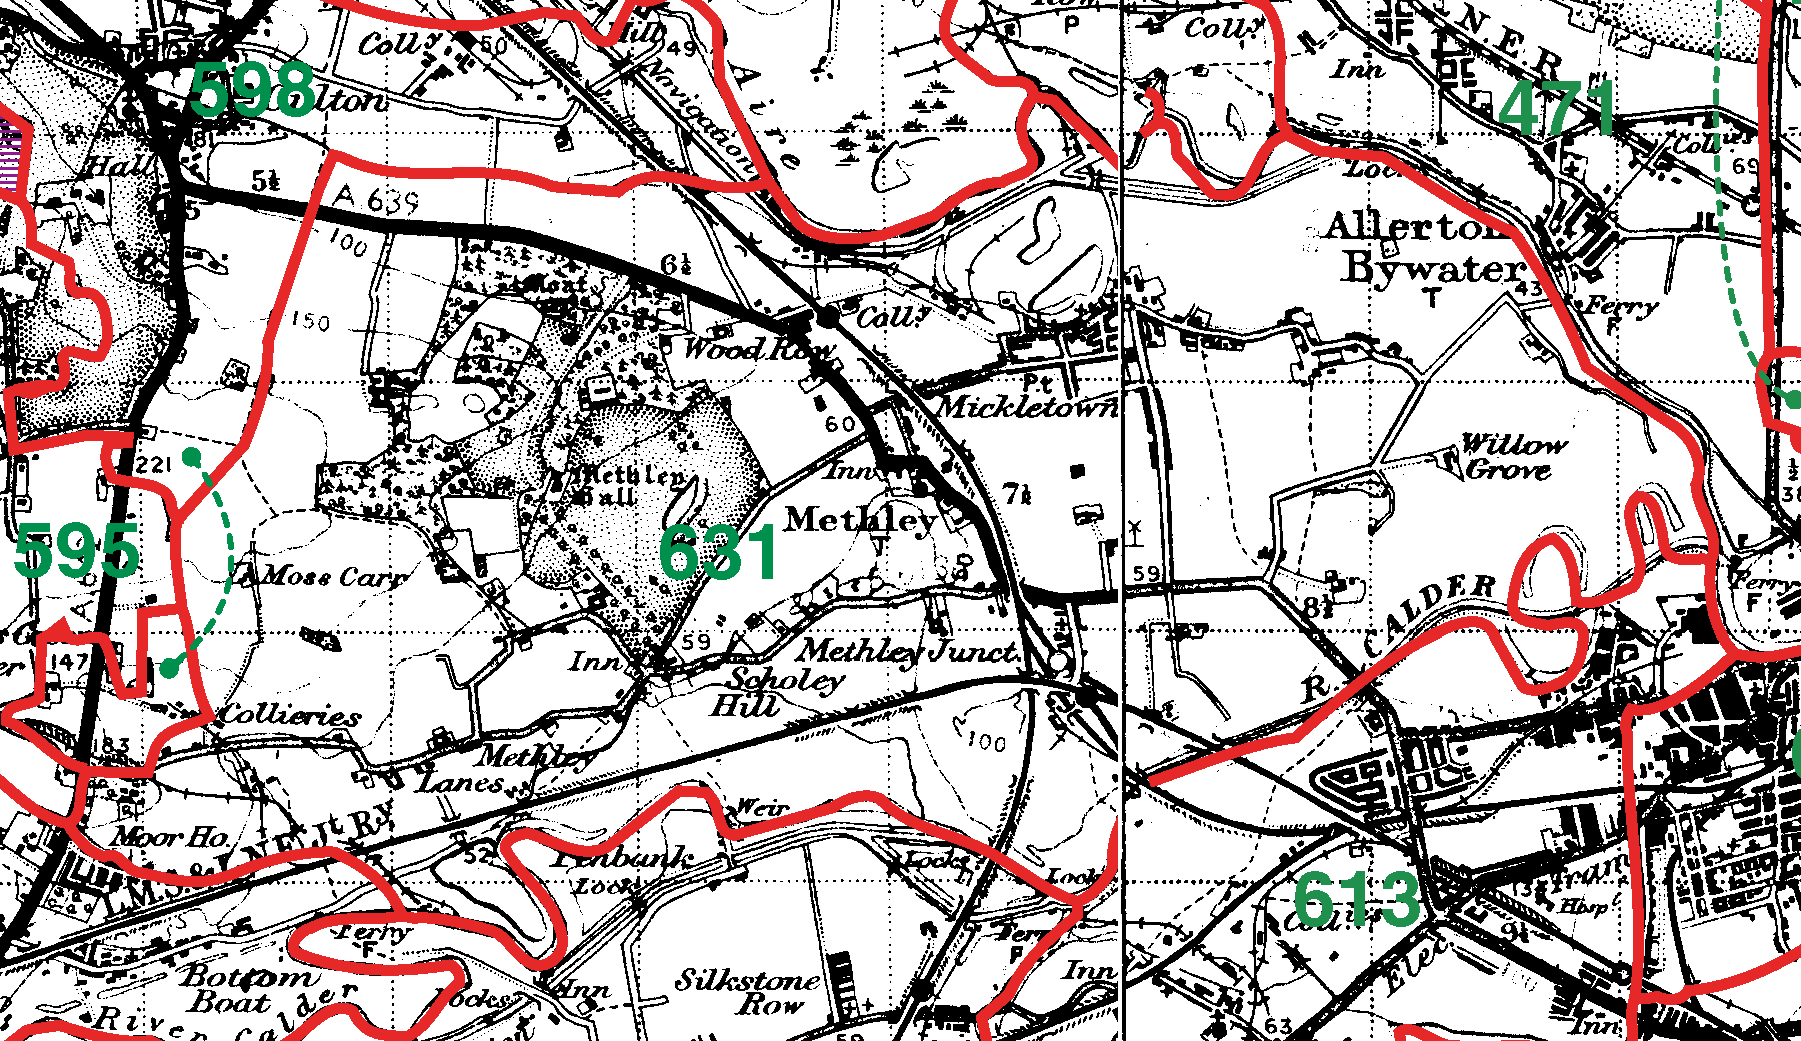 Methley boundaries map